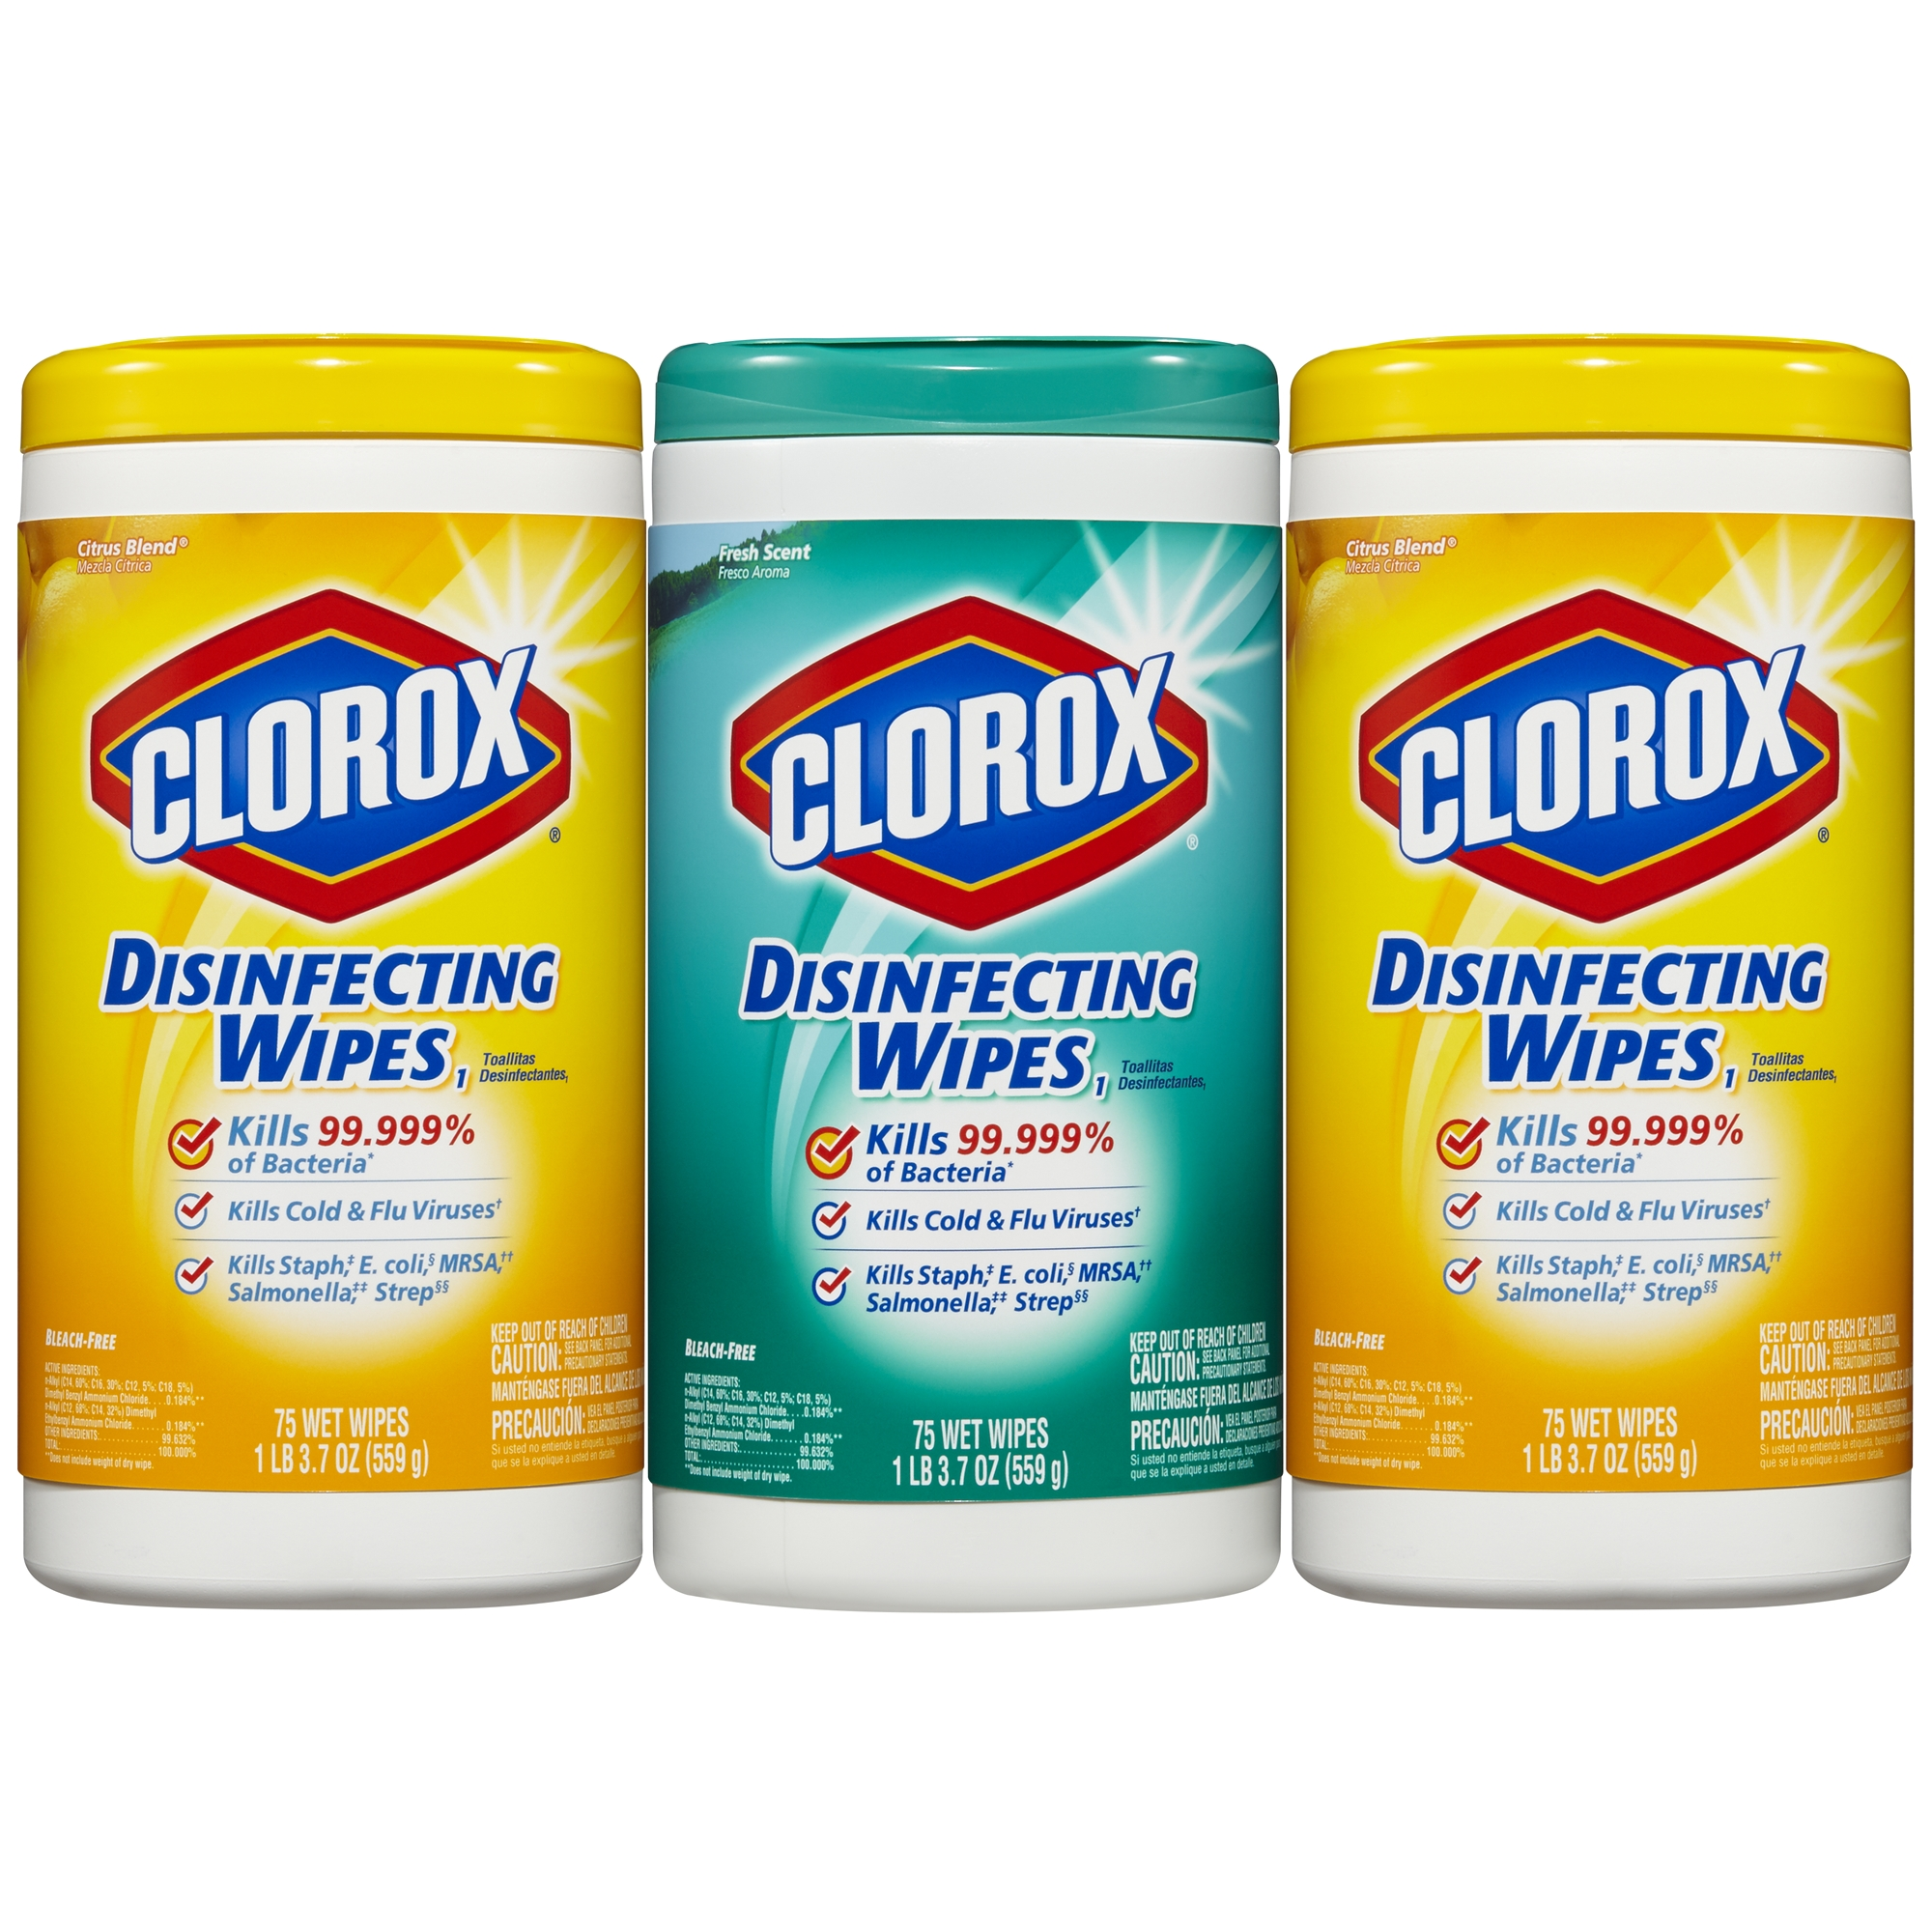 Clorox Disinfecting Wipes Value Pack, Fresh Scent and Citrus Blend, 75 Wipes, 3 Ct